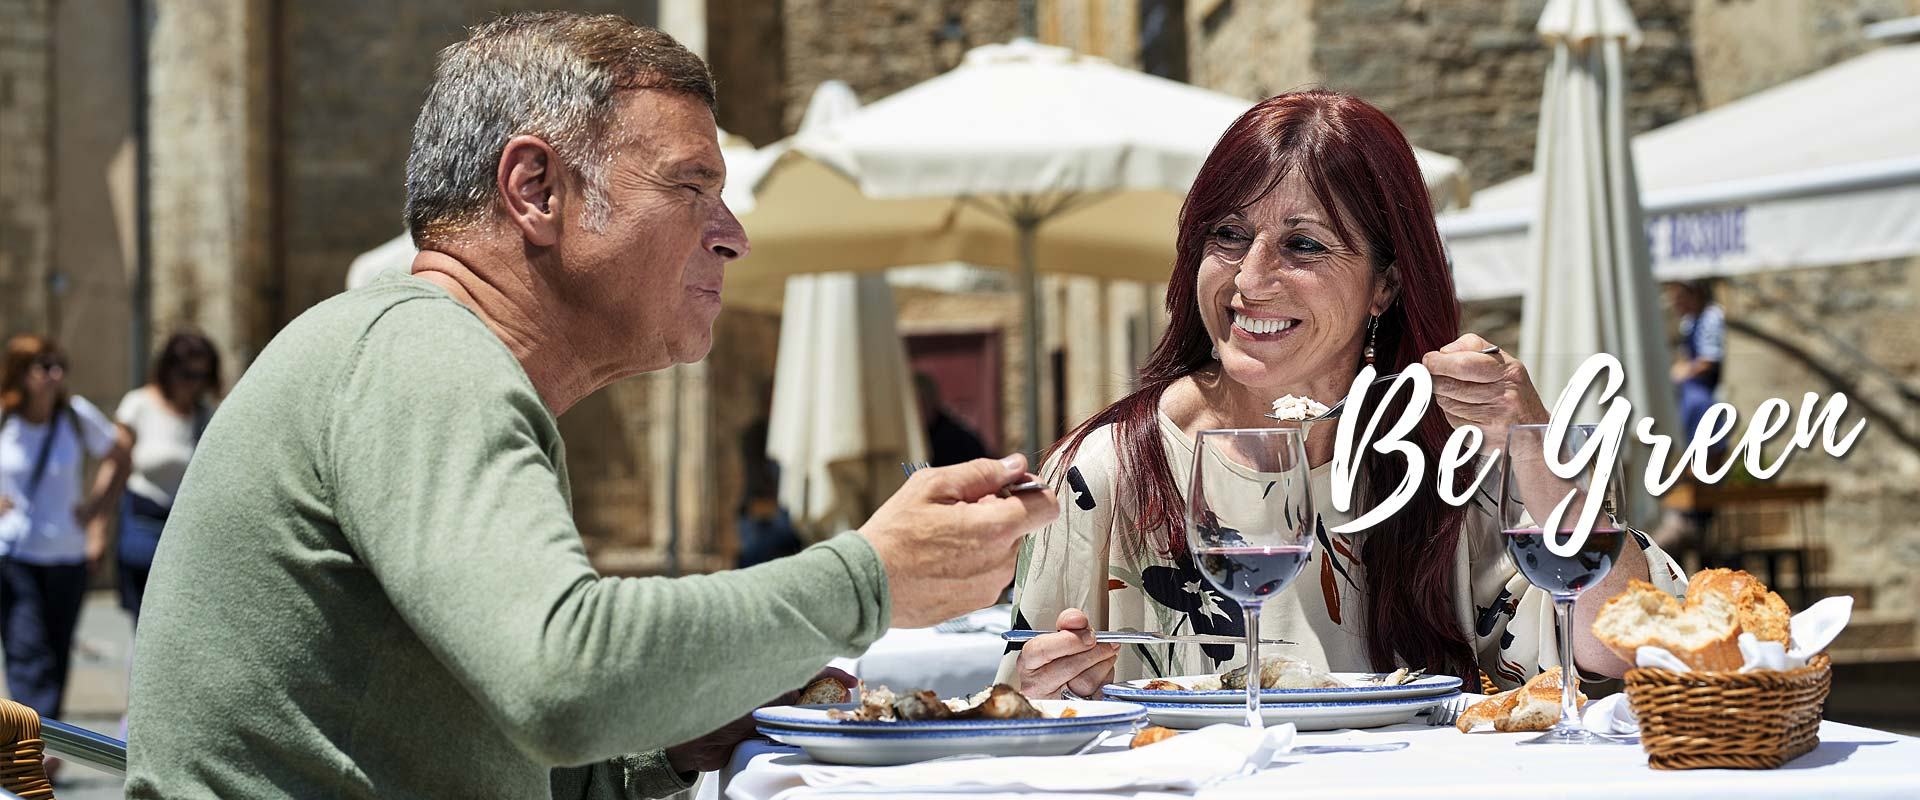 Two people eating on a terrace